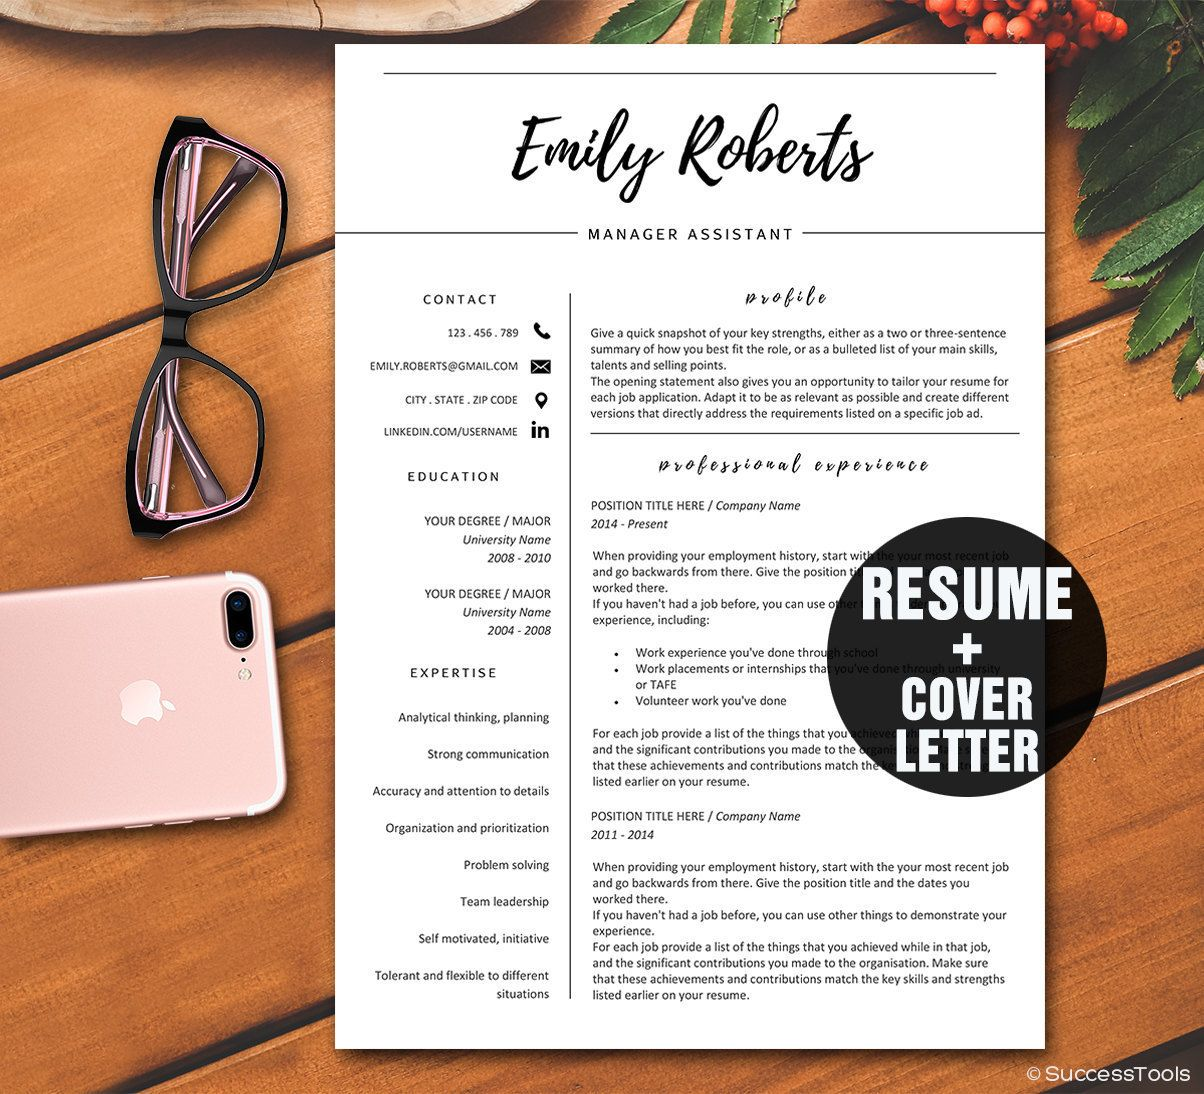 Word Template For Resume Cover Letter%0A creative resume templates word Cover Letter Modern Resume Template CV  Template Professional Resume Template Instant Download